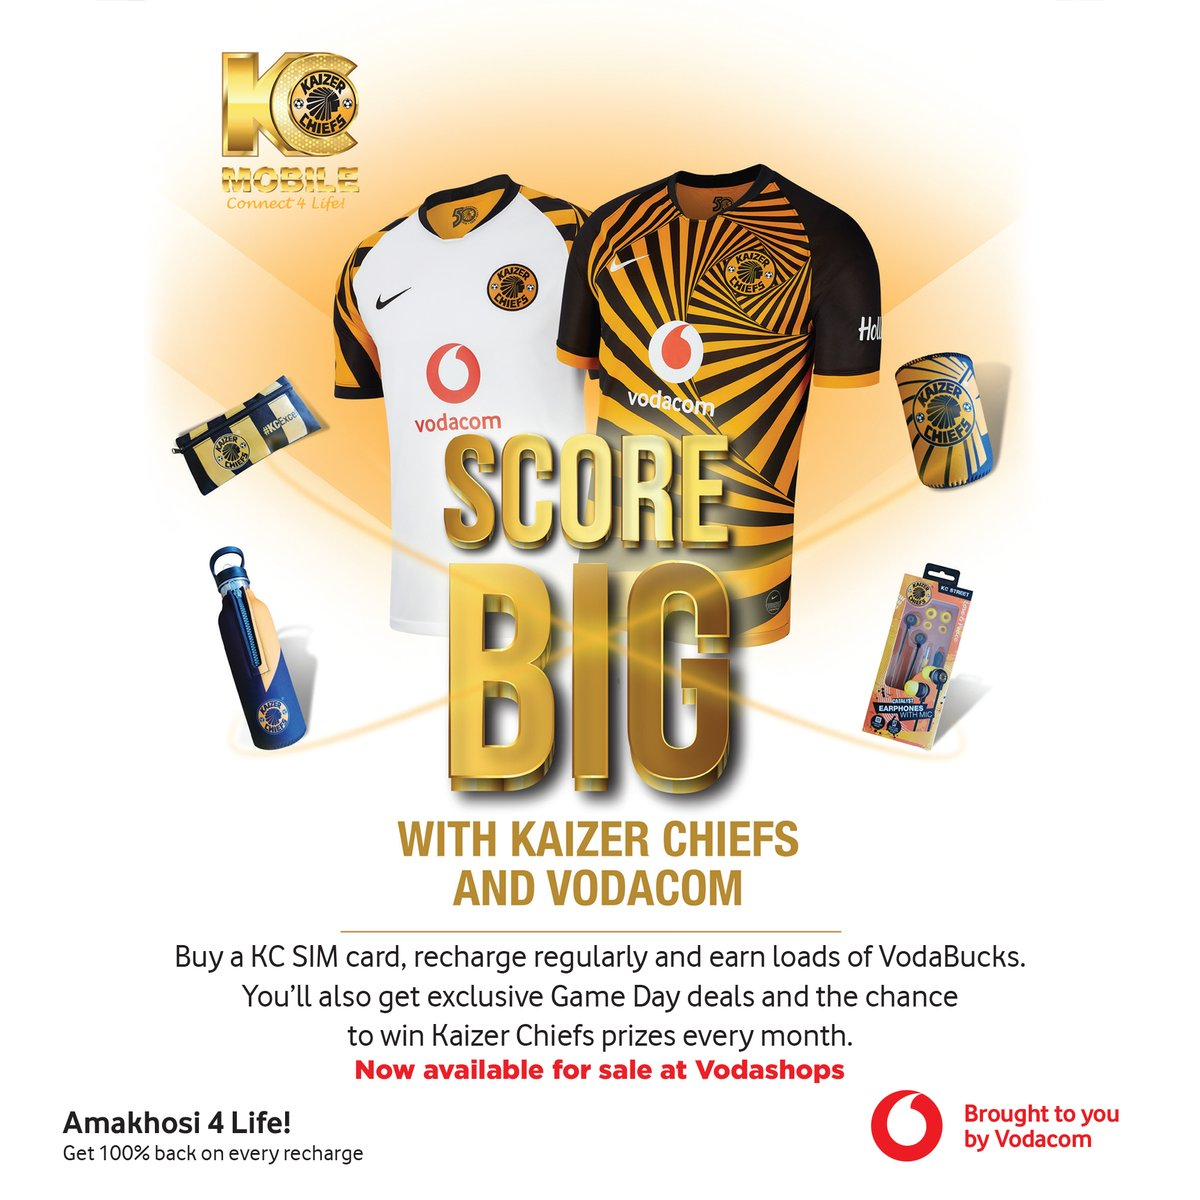 KC Mobile! Good News Khosi Family, you can now get your KC Mobile starter packs at Vodashops countrywide. Great game day deals and also you get a chance to win great prizes! #KCMobile #Connect4Life #Amakhosi4Life